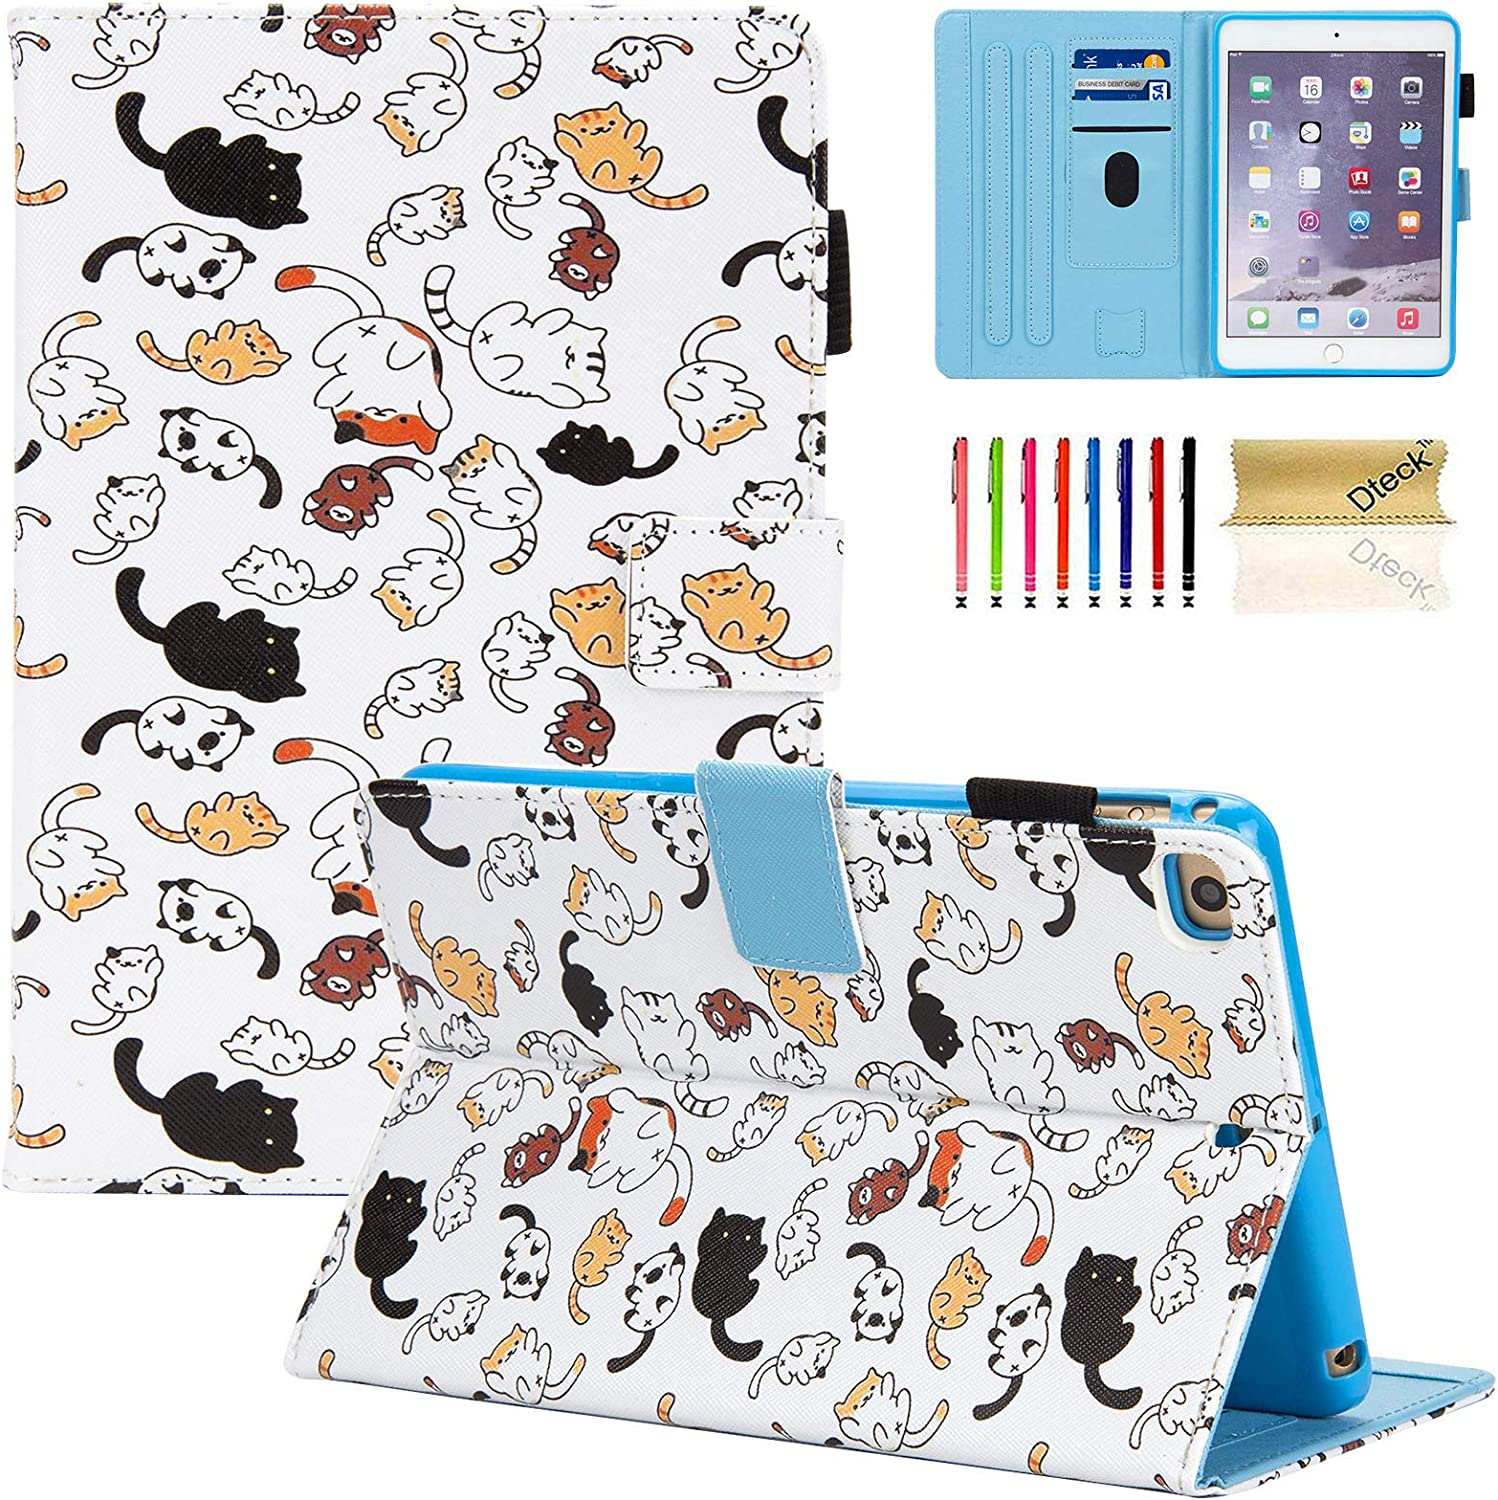 Dteck Case for iPad Mini 4 Case/iPad Mini 5 2019 (5th Generation 7.9 inch), Slim Premium Leather Smart Folio Stand Case with Pencil Holder, Auto Sleep/Wake, Multi-Angle Viewing Case, Cute Cats